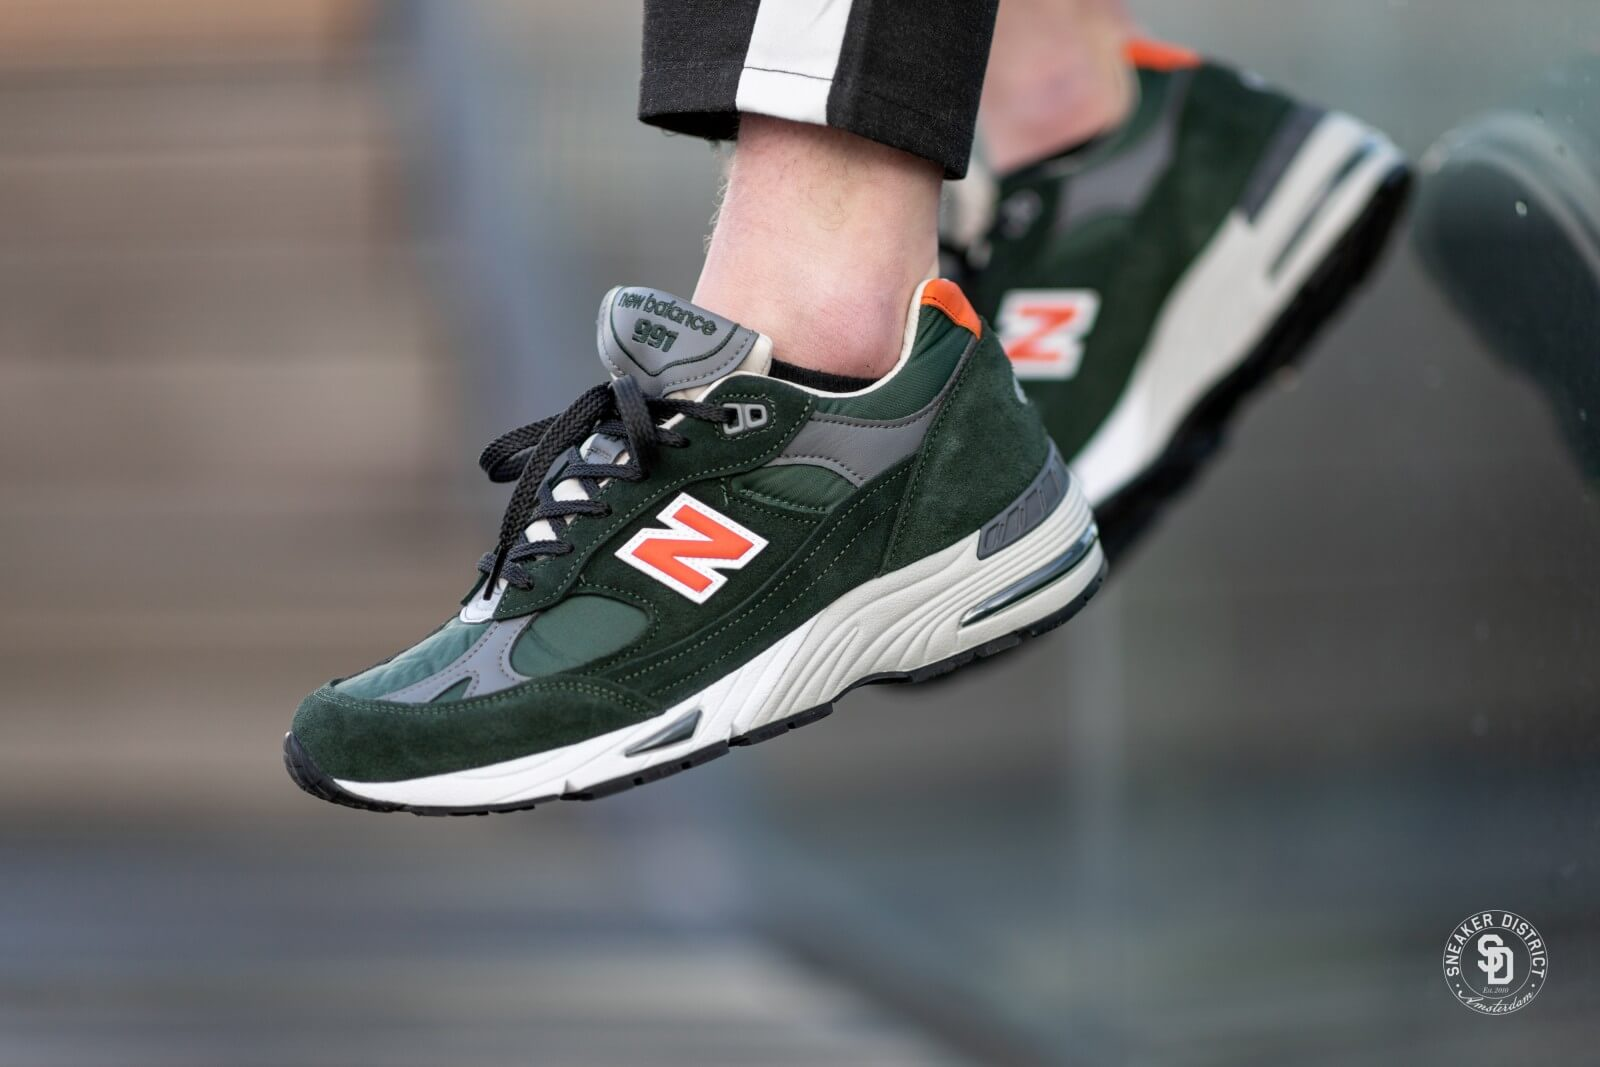 New Balance M991TNF Green/Orange Made in England - 702211-60-6